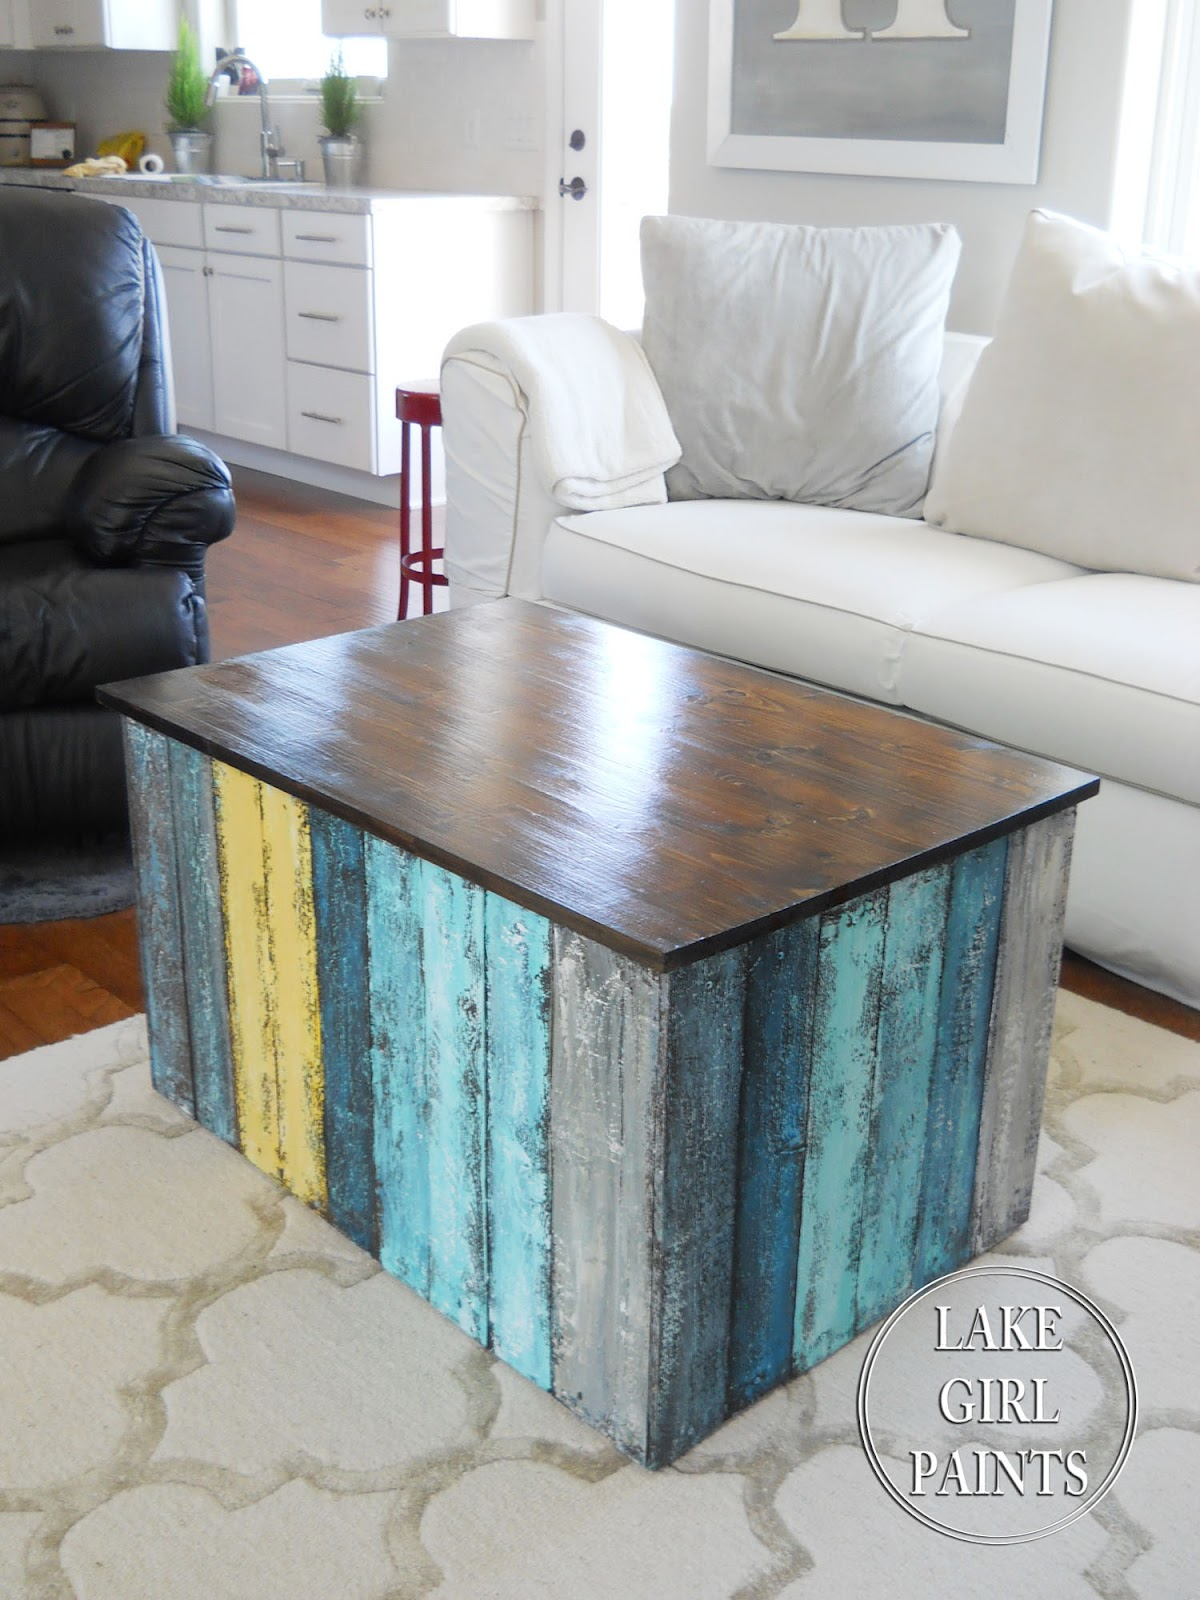 Lake Girl Paints Beach Box Coffee Table